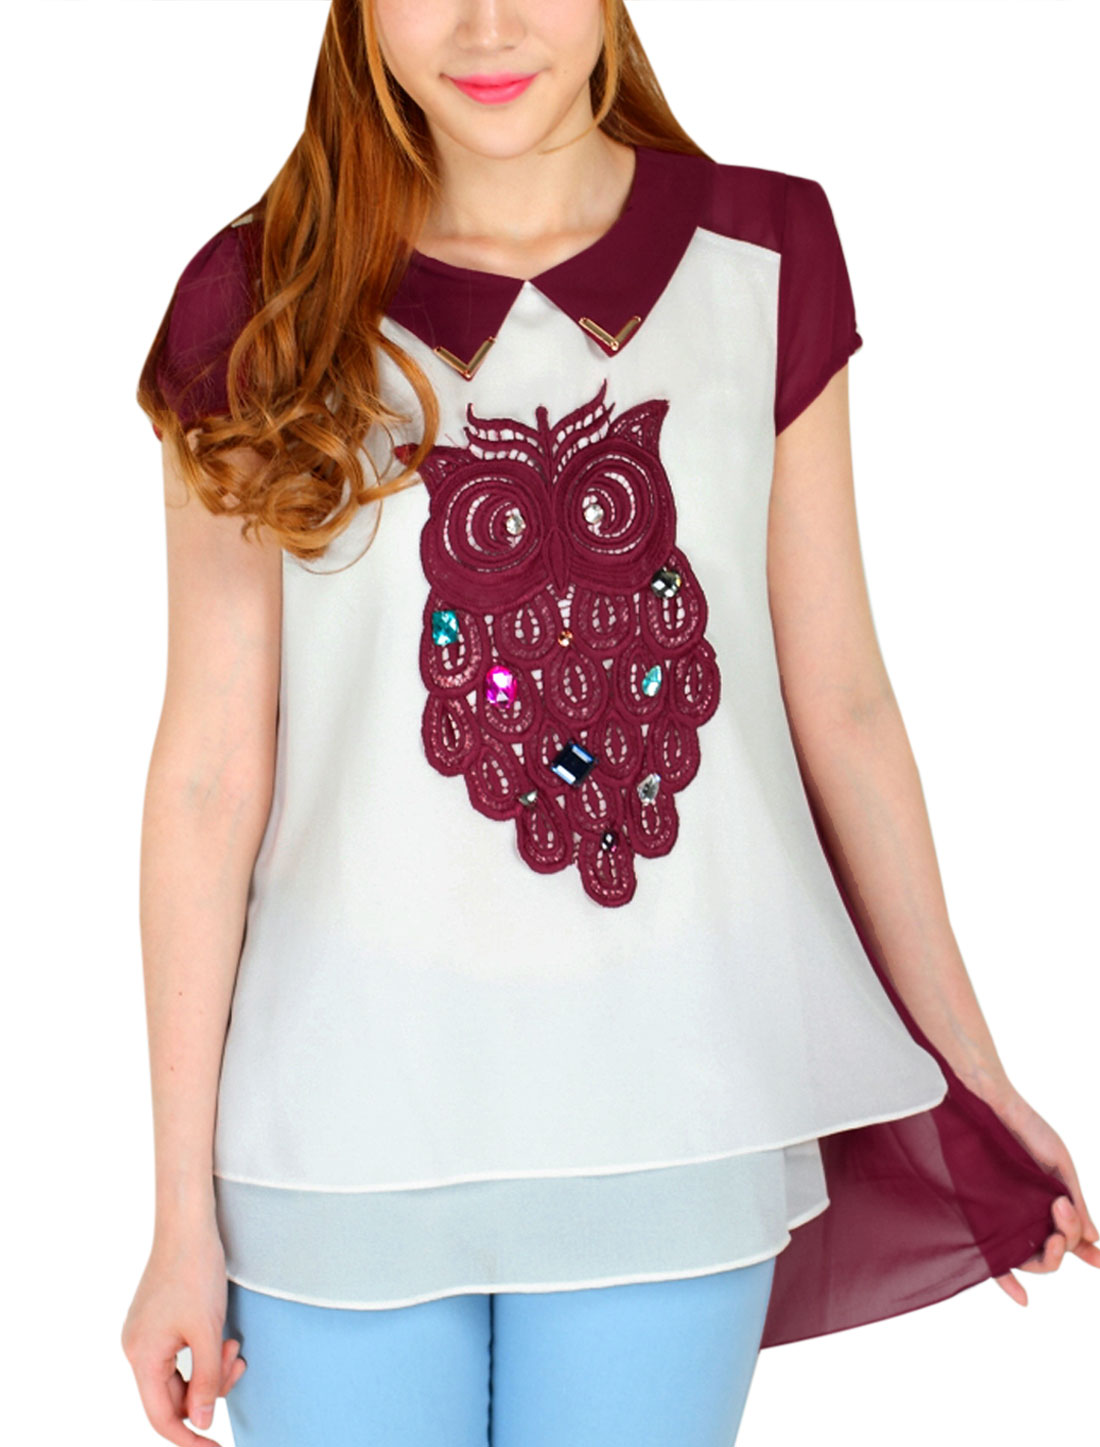 Lady Owl Applique Rhinestone Decor Tunic Top Burgundy White M